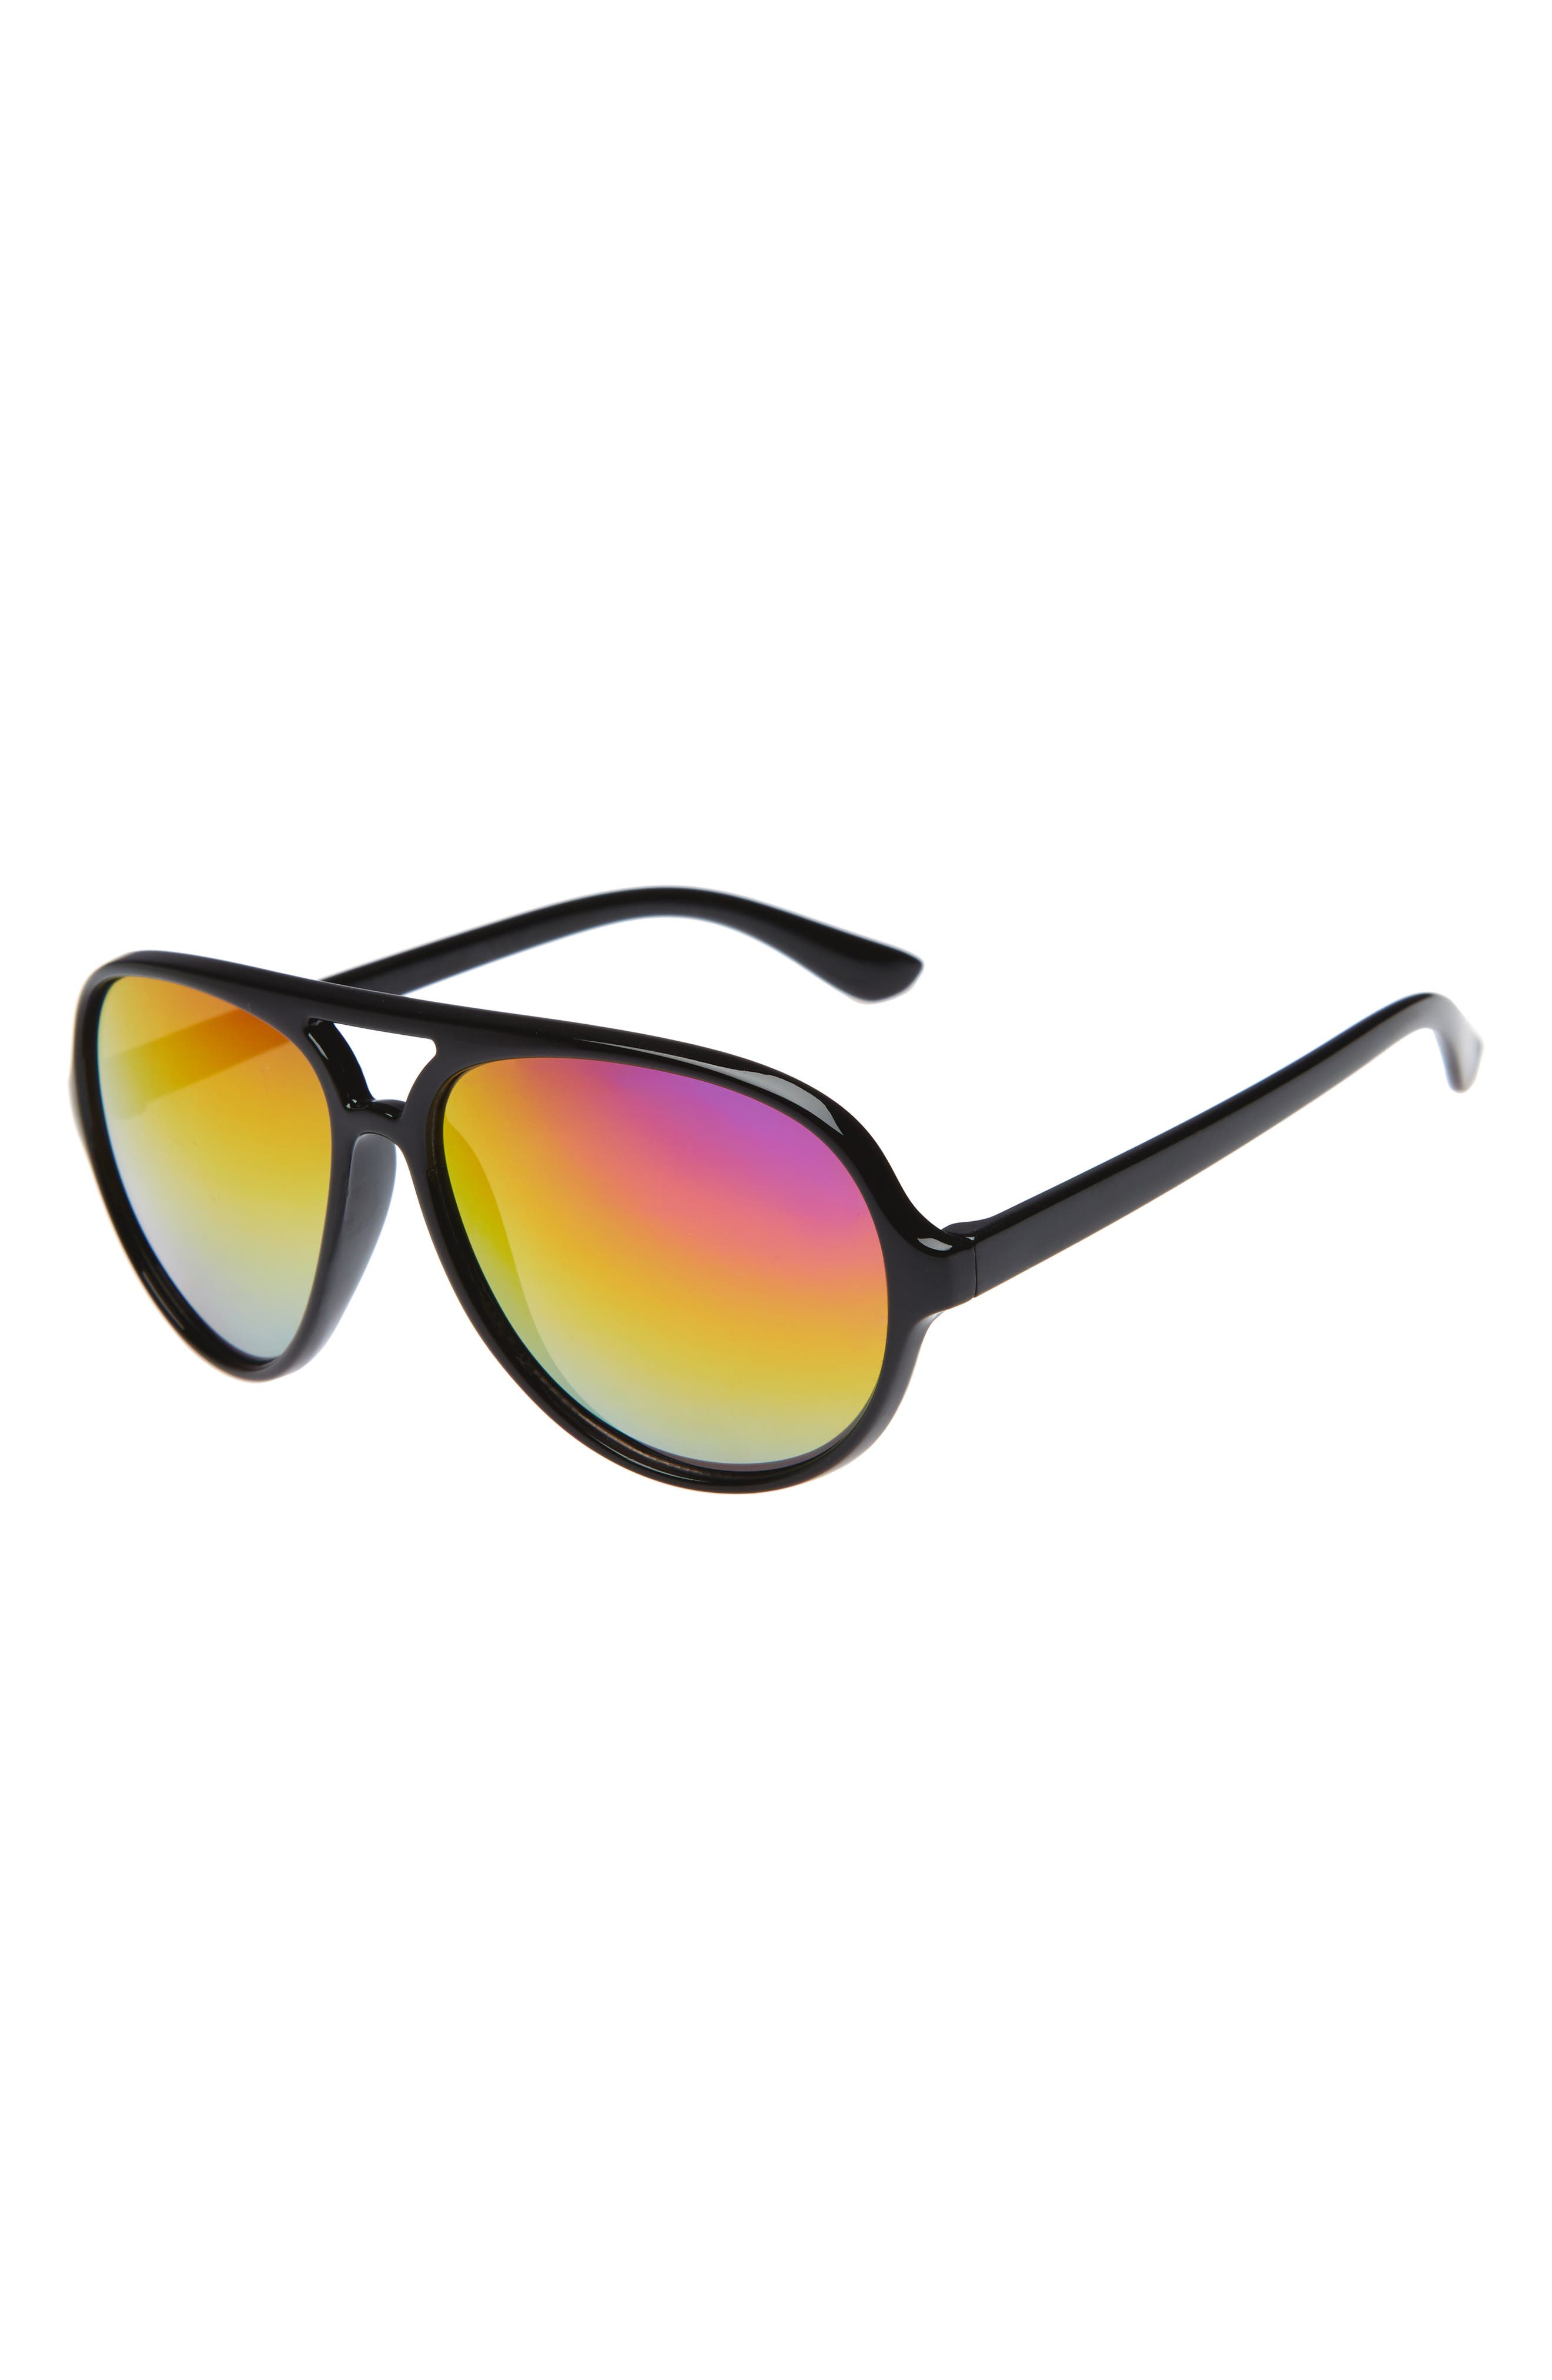 Mirrored Aviator Sunglasses,                             Main thumbnail 1, color,                             001